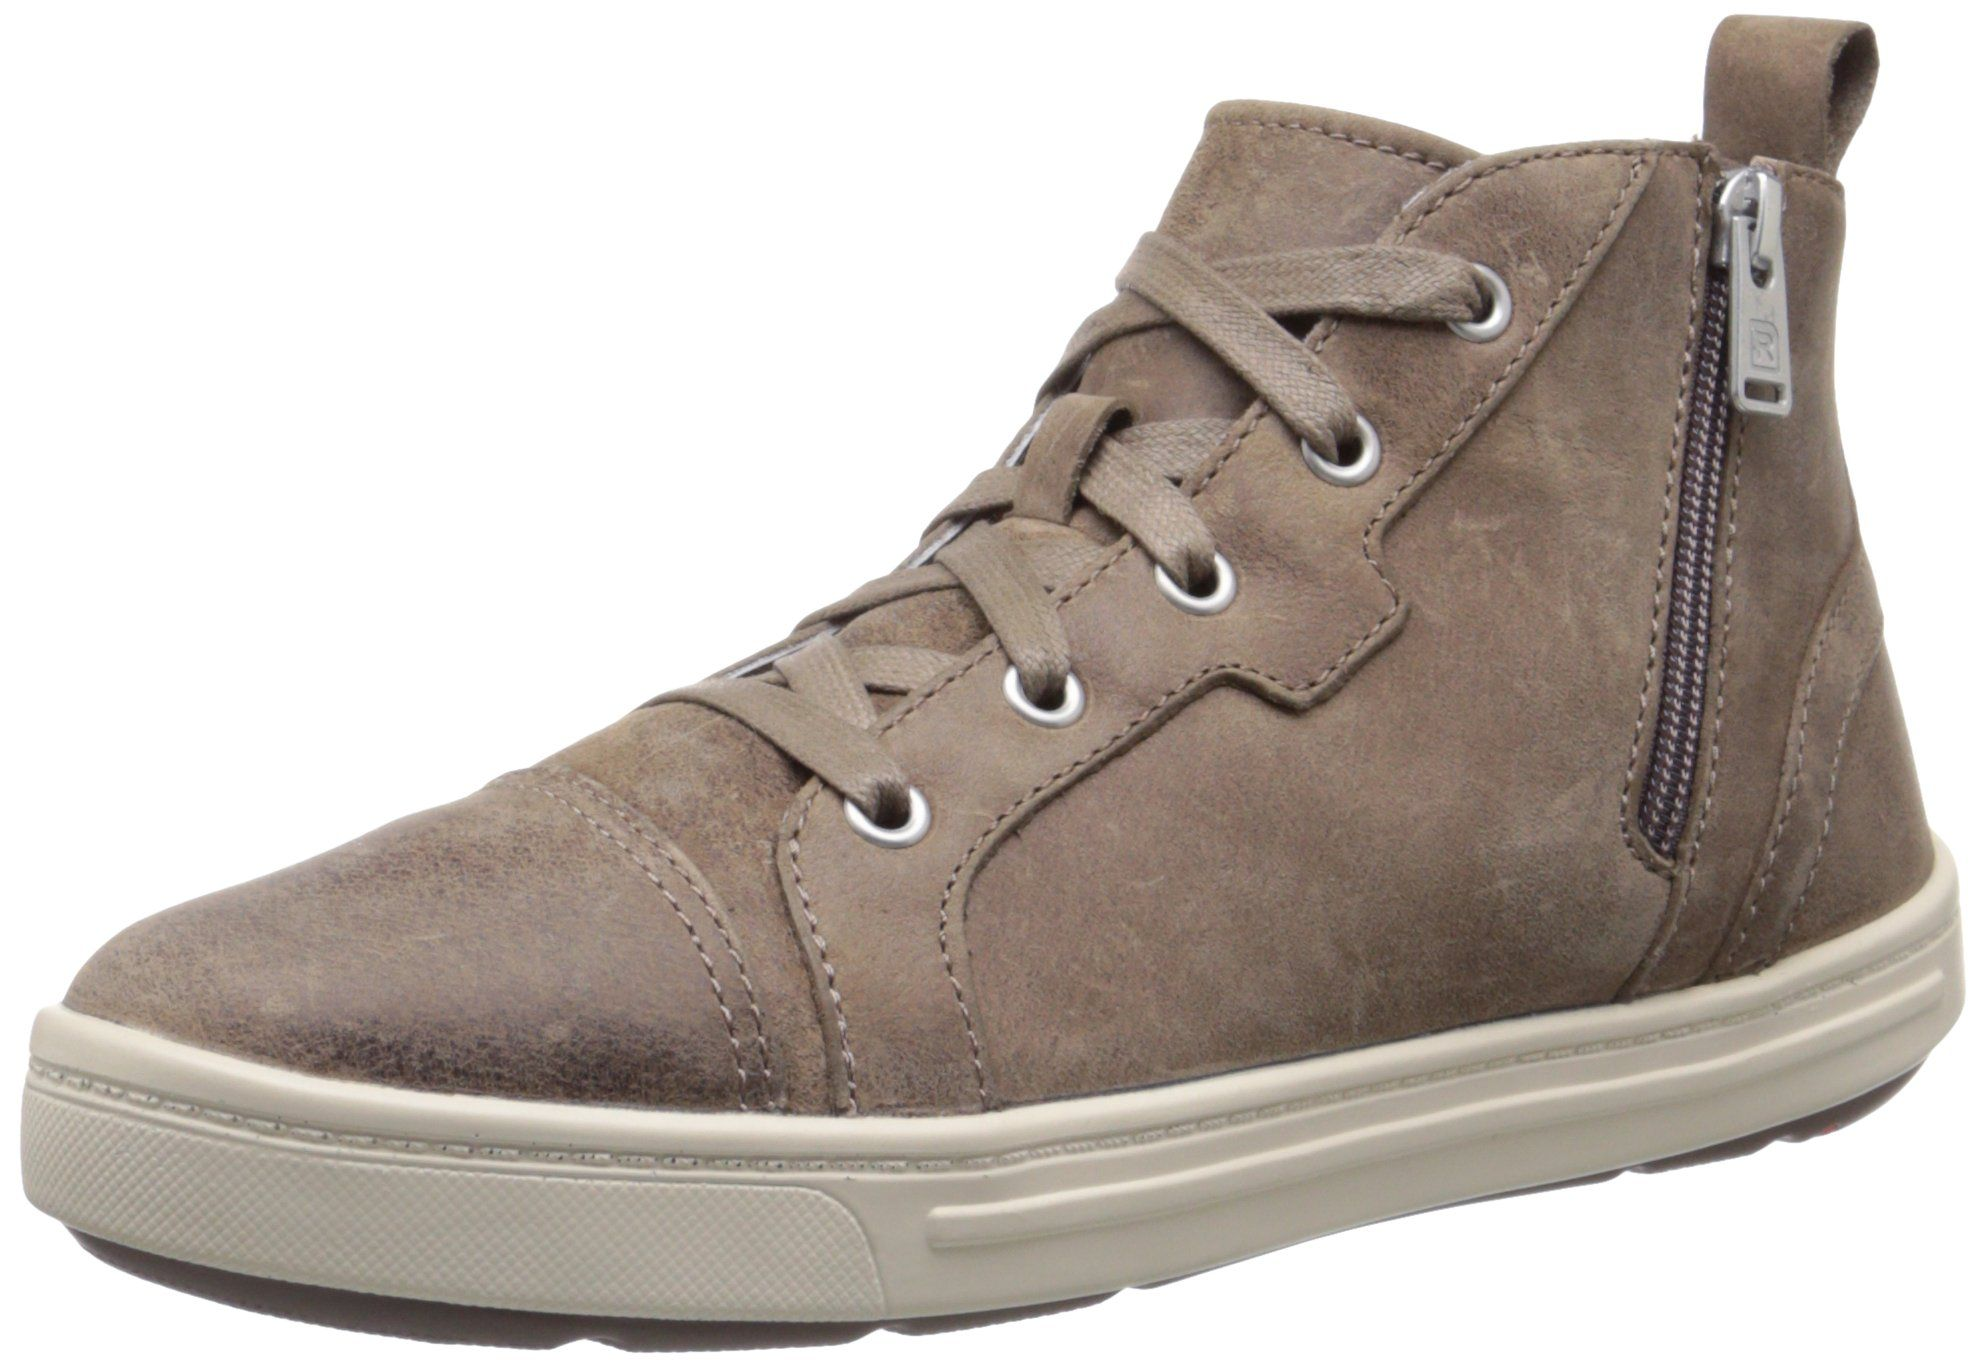 Rockport Women's Truwalkzero Cupsole Hi Top M Grey Dist Leather 7 M (B). High-top sneaker with lace-up front, cap toe, and side instep zipper. Rear pull loop.